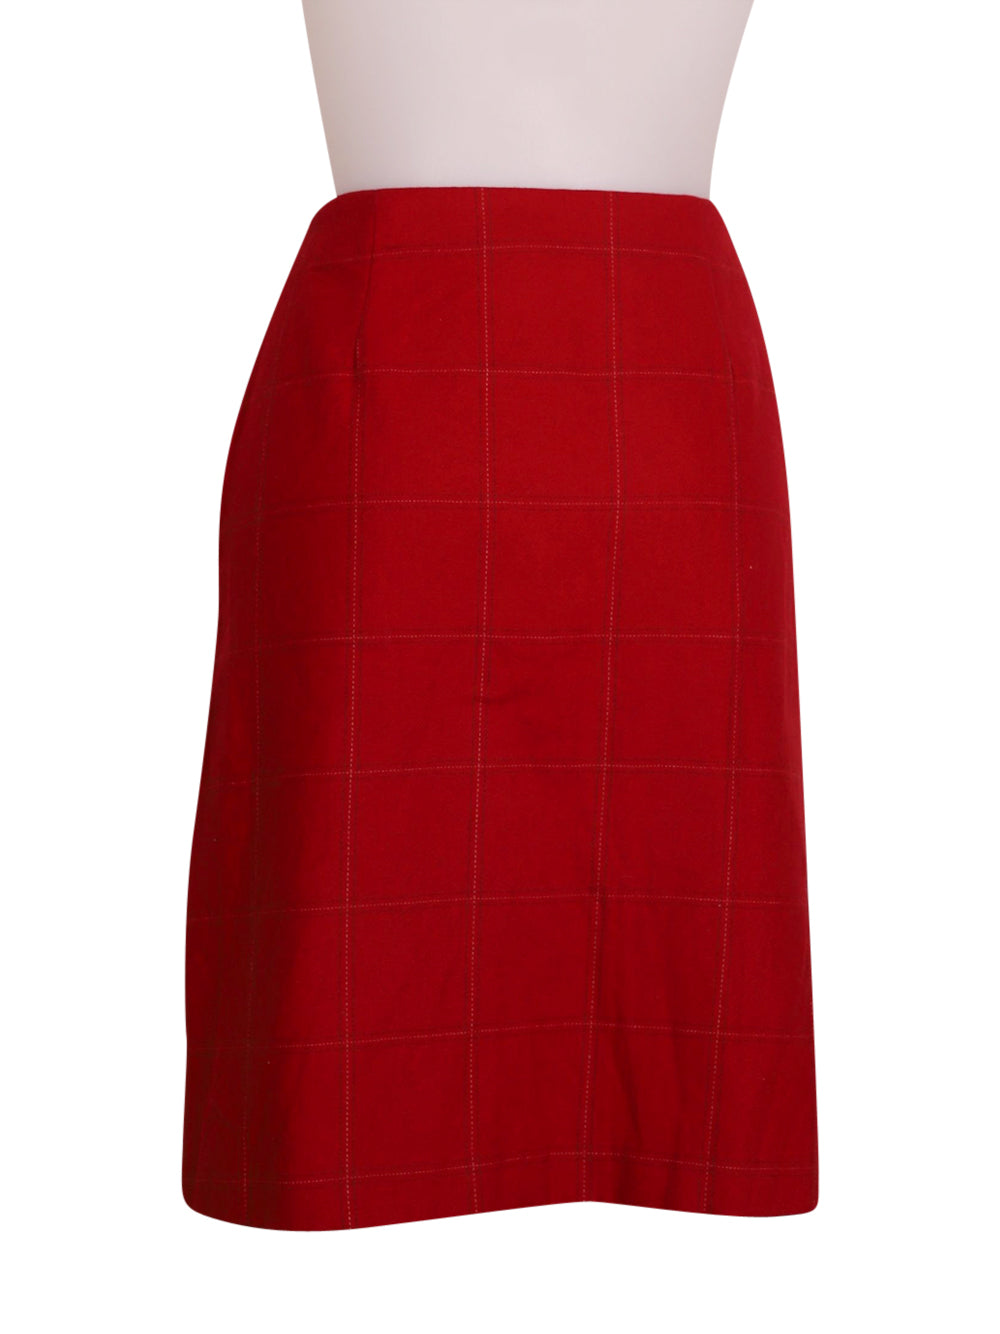 Back photo of Preloved Stefanel Red Woman's skirt - size 10/M